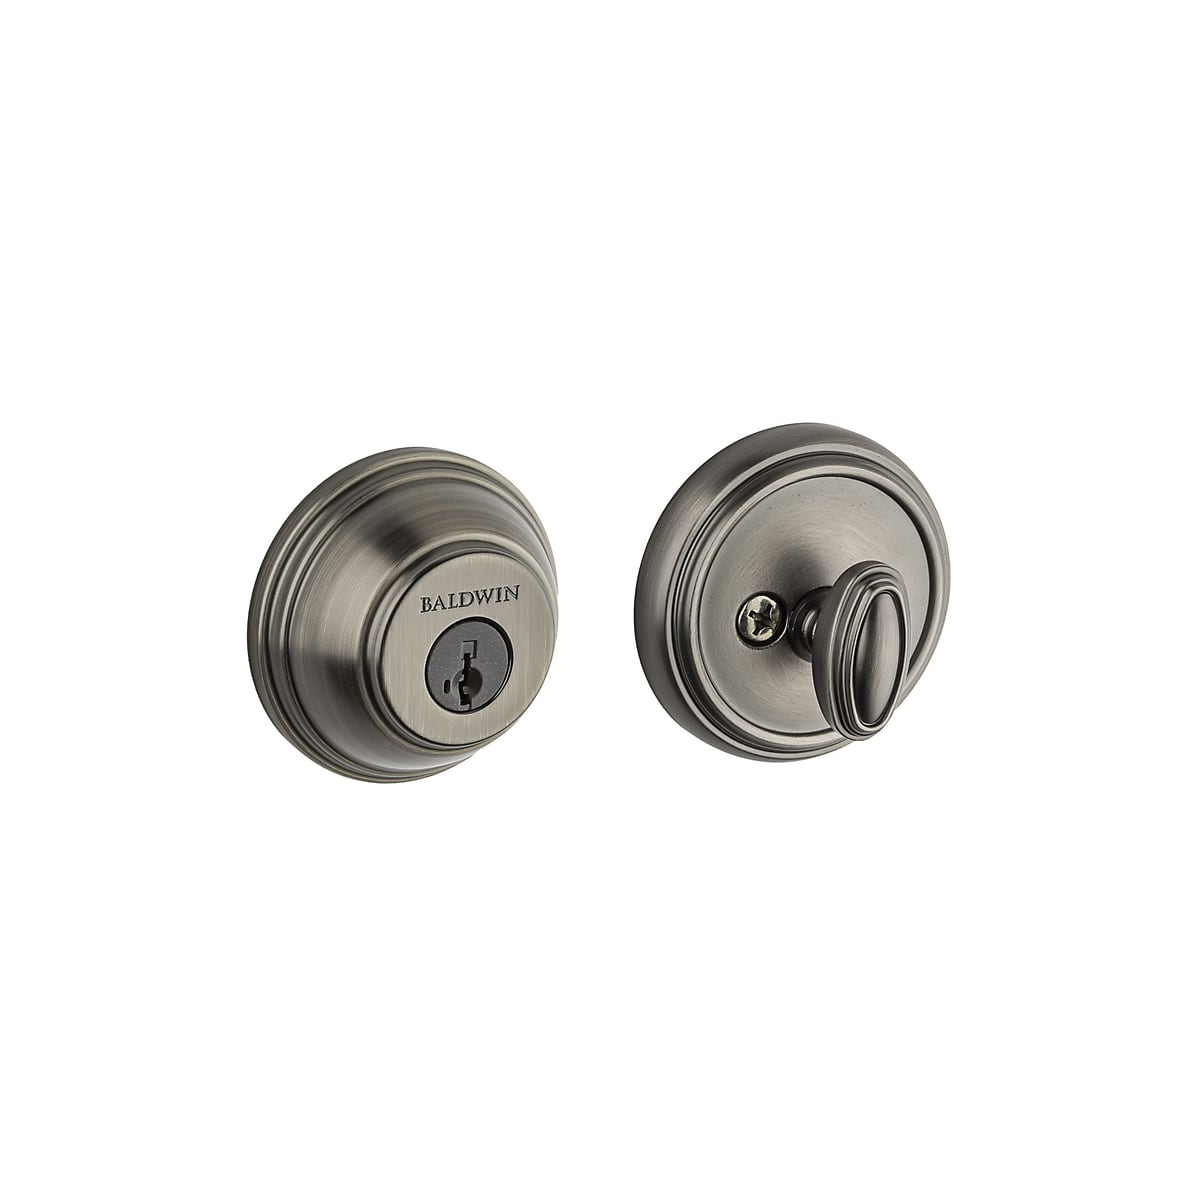 Baldwin Traditional Round Single Cylinder Deadbolt from the Prestige Collection